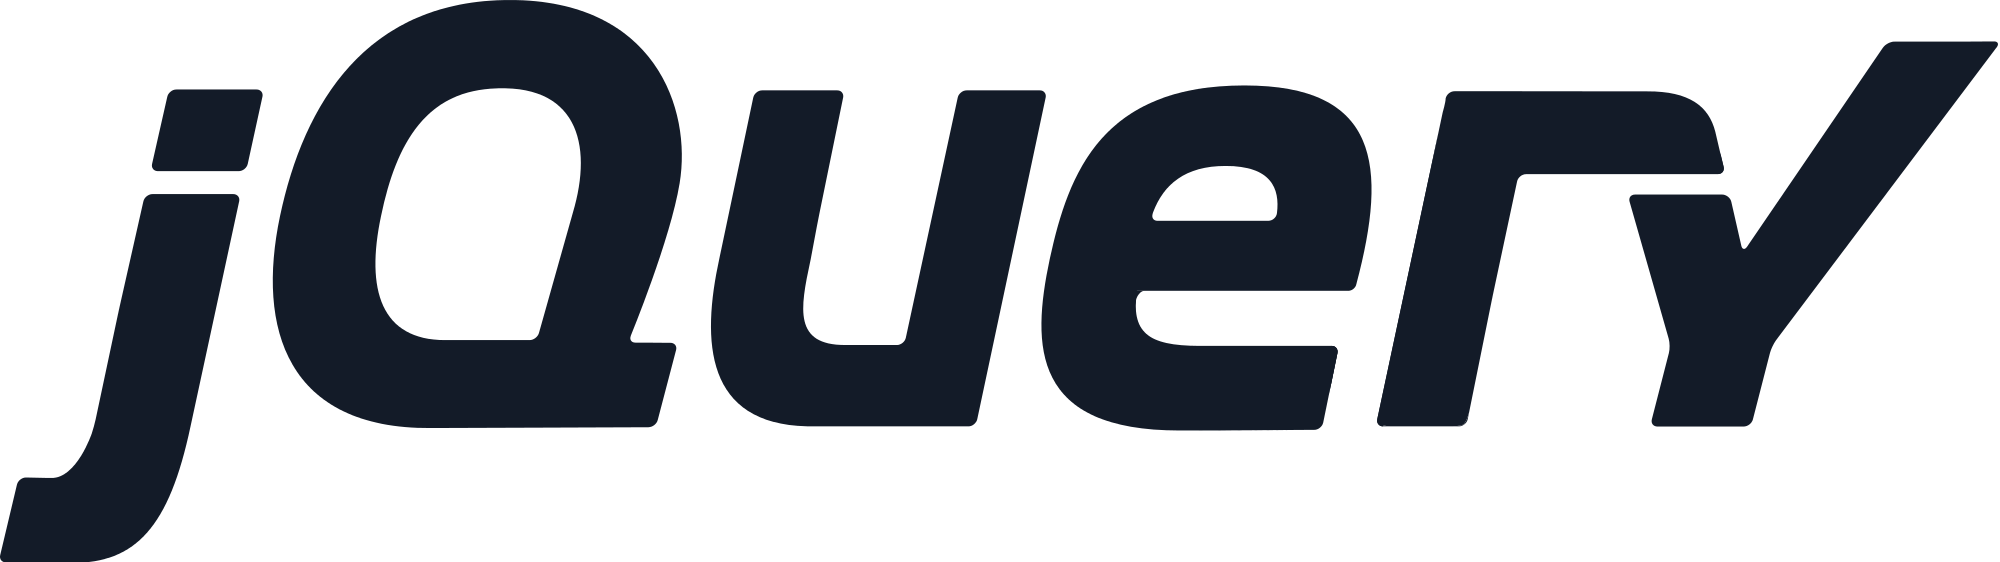 jquery-logo-png-1.png